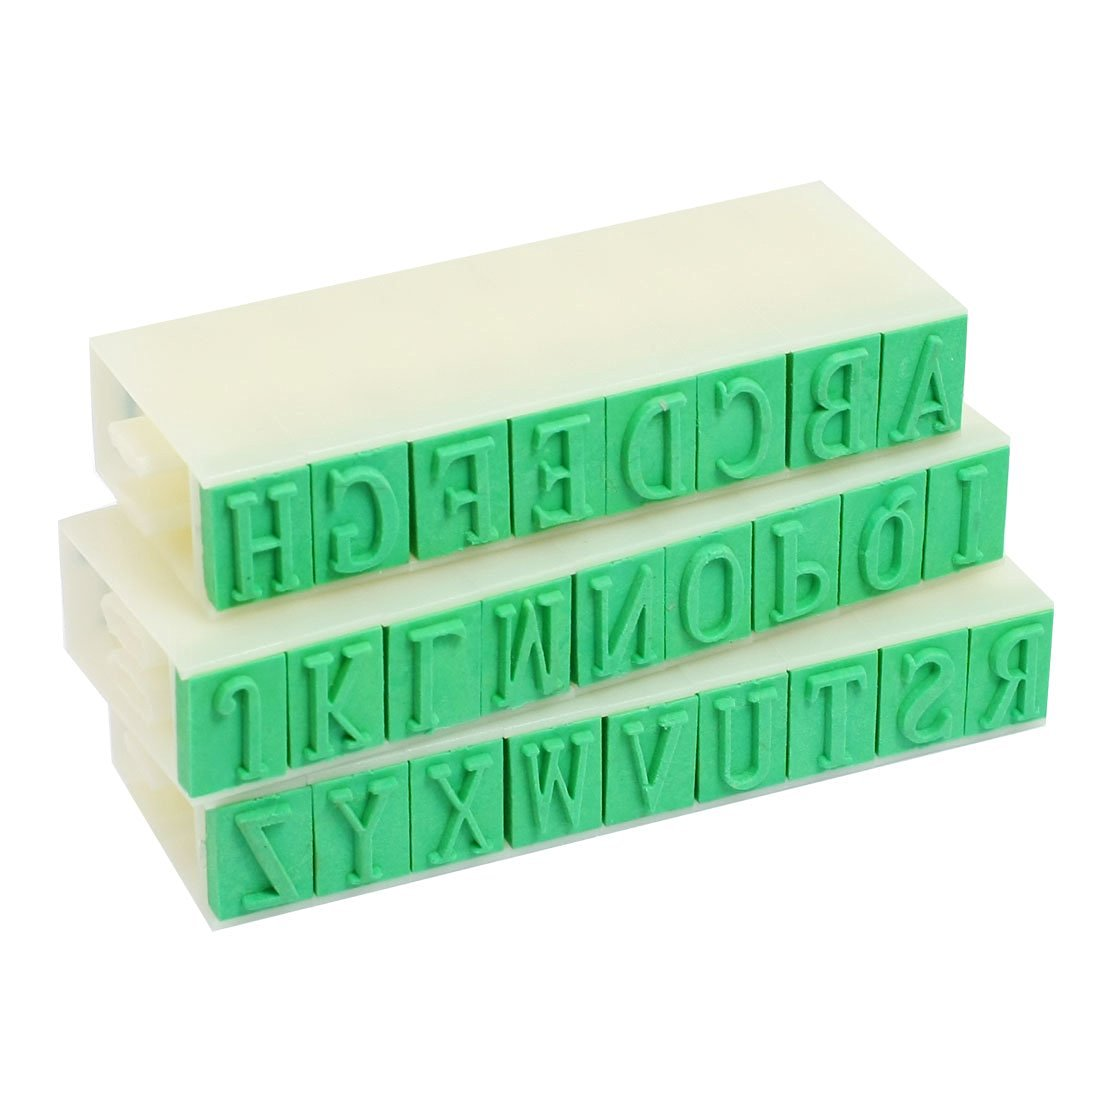 "uxcell Plastic 26 English Letters Alphabet Detachable Stamp Set Beige Green 0.4""x 0.3"""